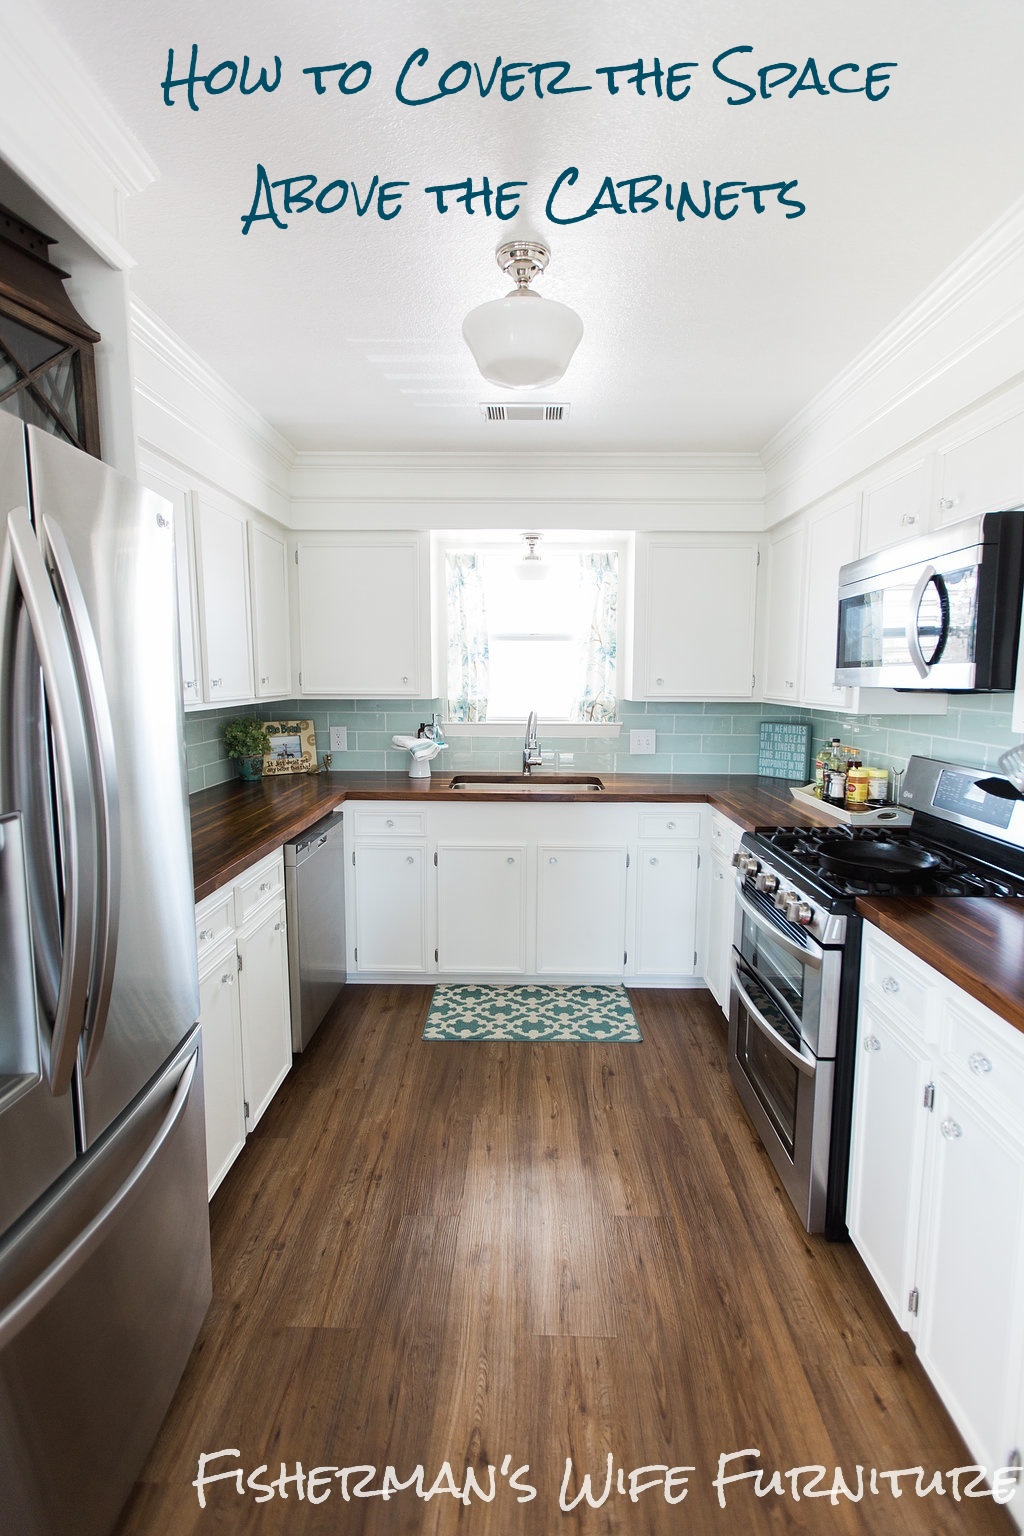 Ideas For Space On Top Of Kitchen Cabinets1024 X 1536